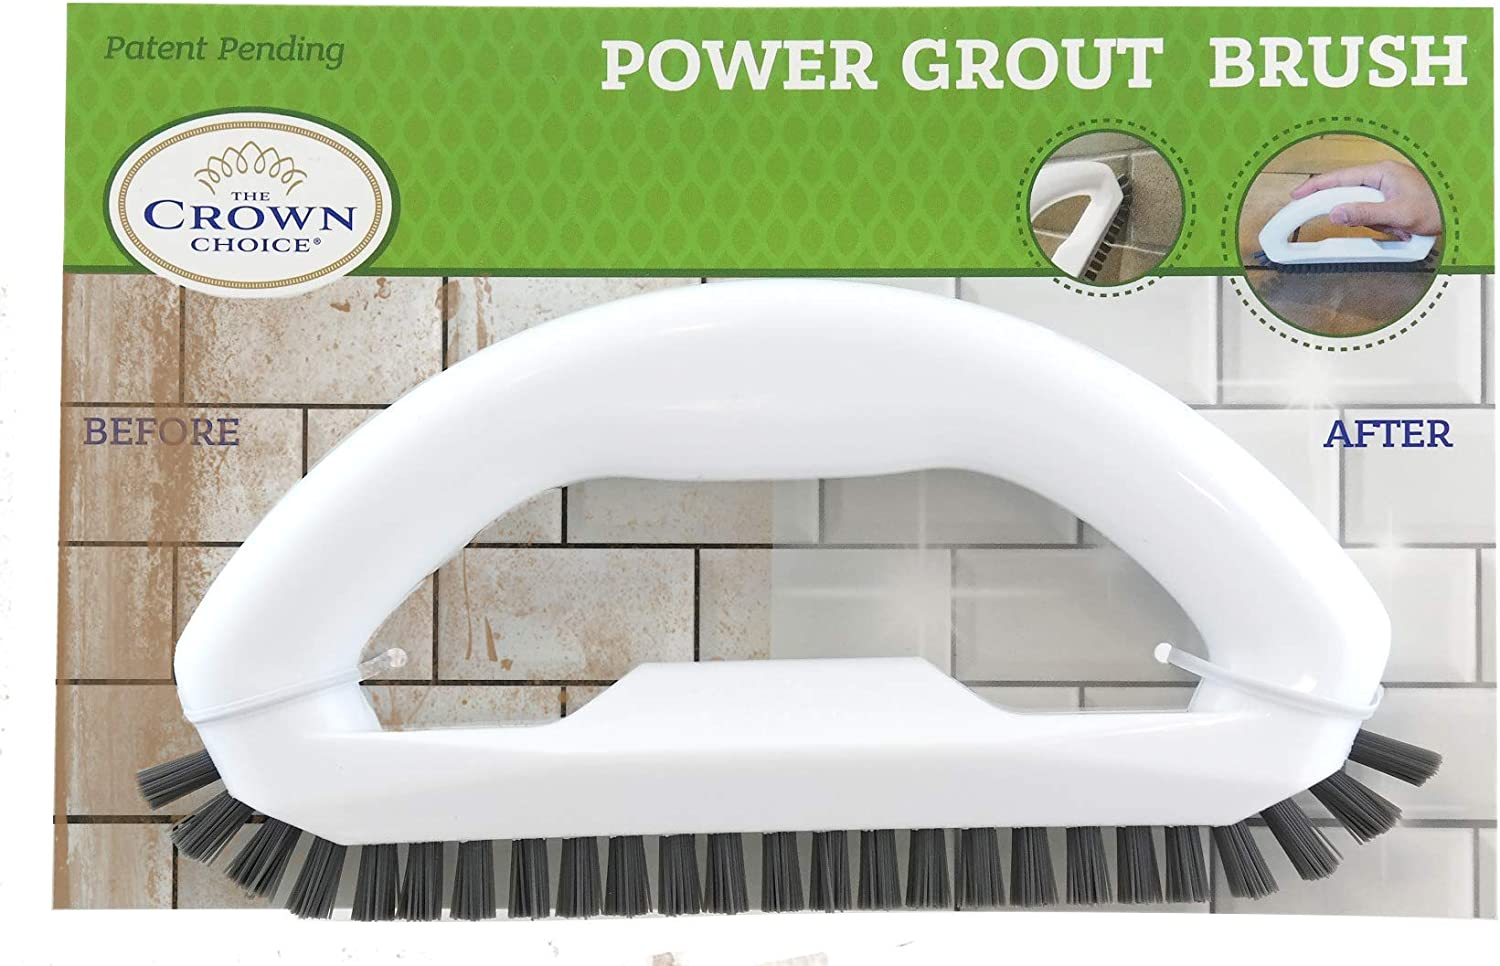 Grout Cleaner Brush with Stiff Angled Bristles. Best Scrub Brushes for Shower Cleaning, Scrubbing Floor Lines and Tile Joints | Bathroom, Showers, Tiles, Seams